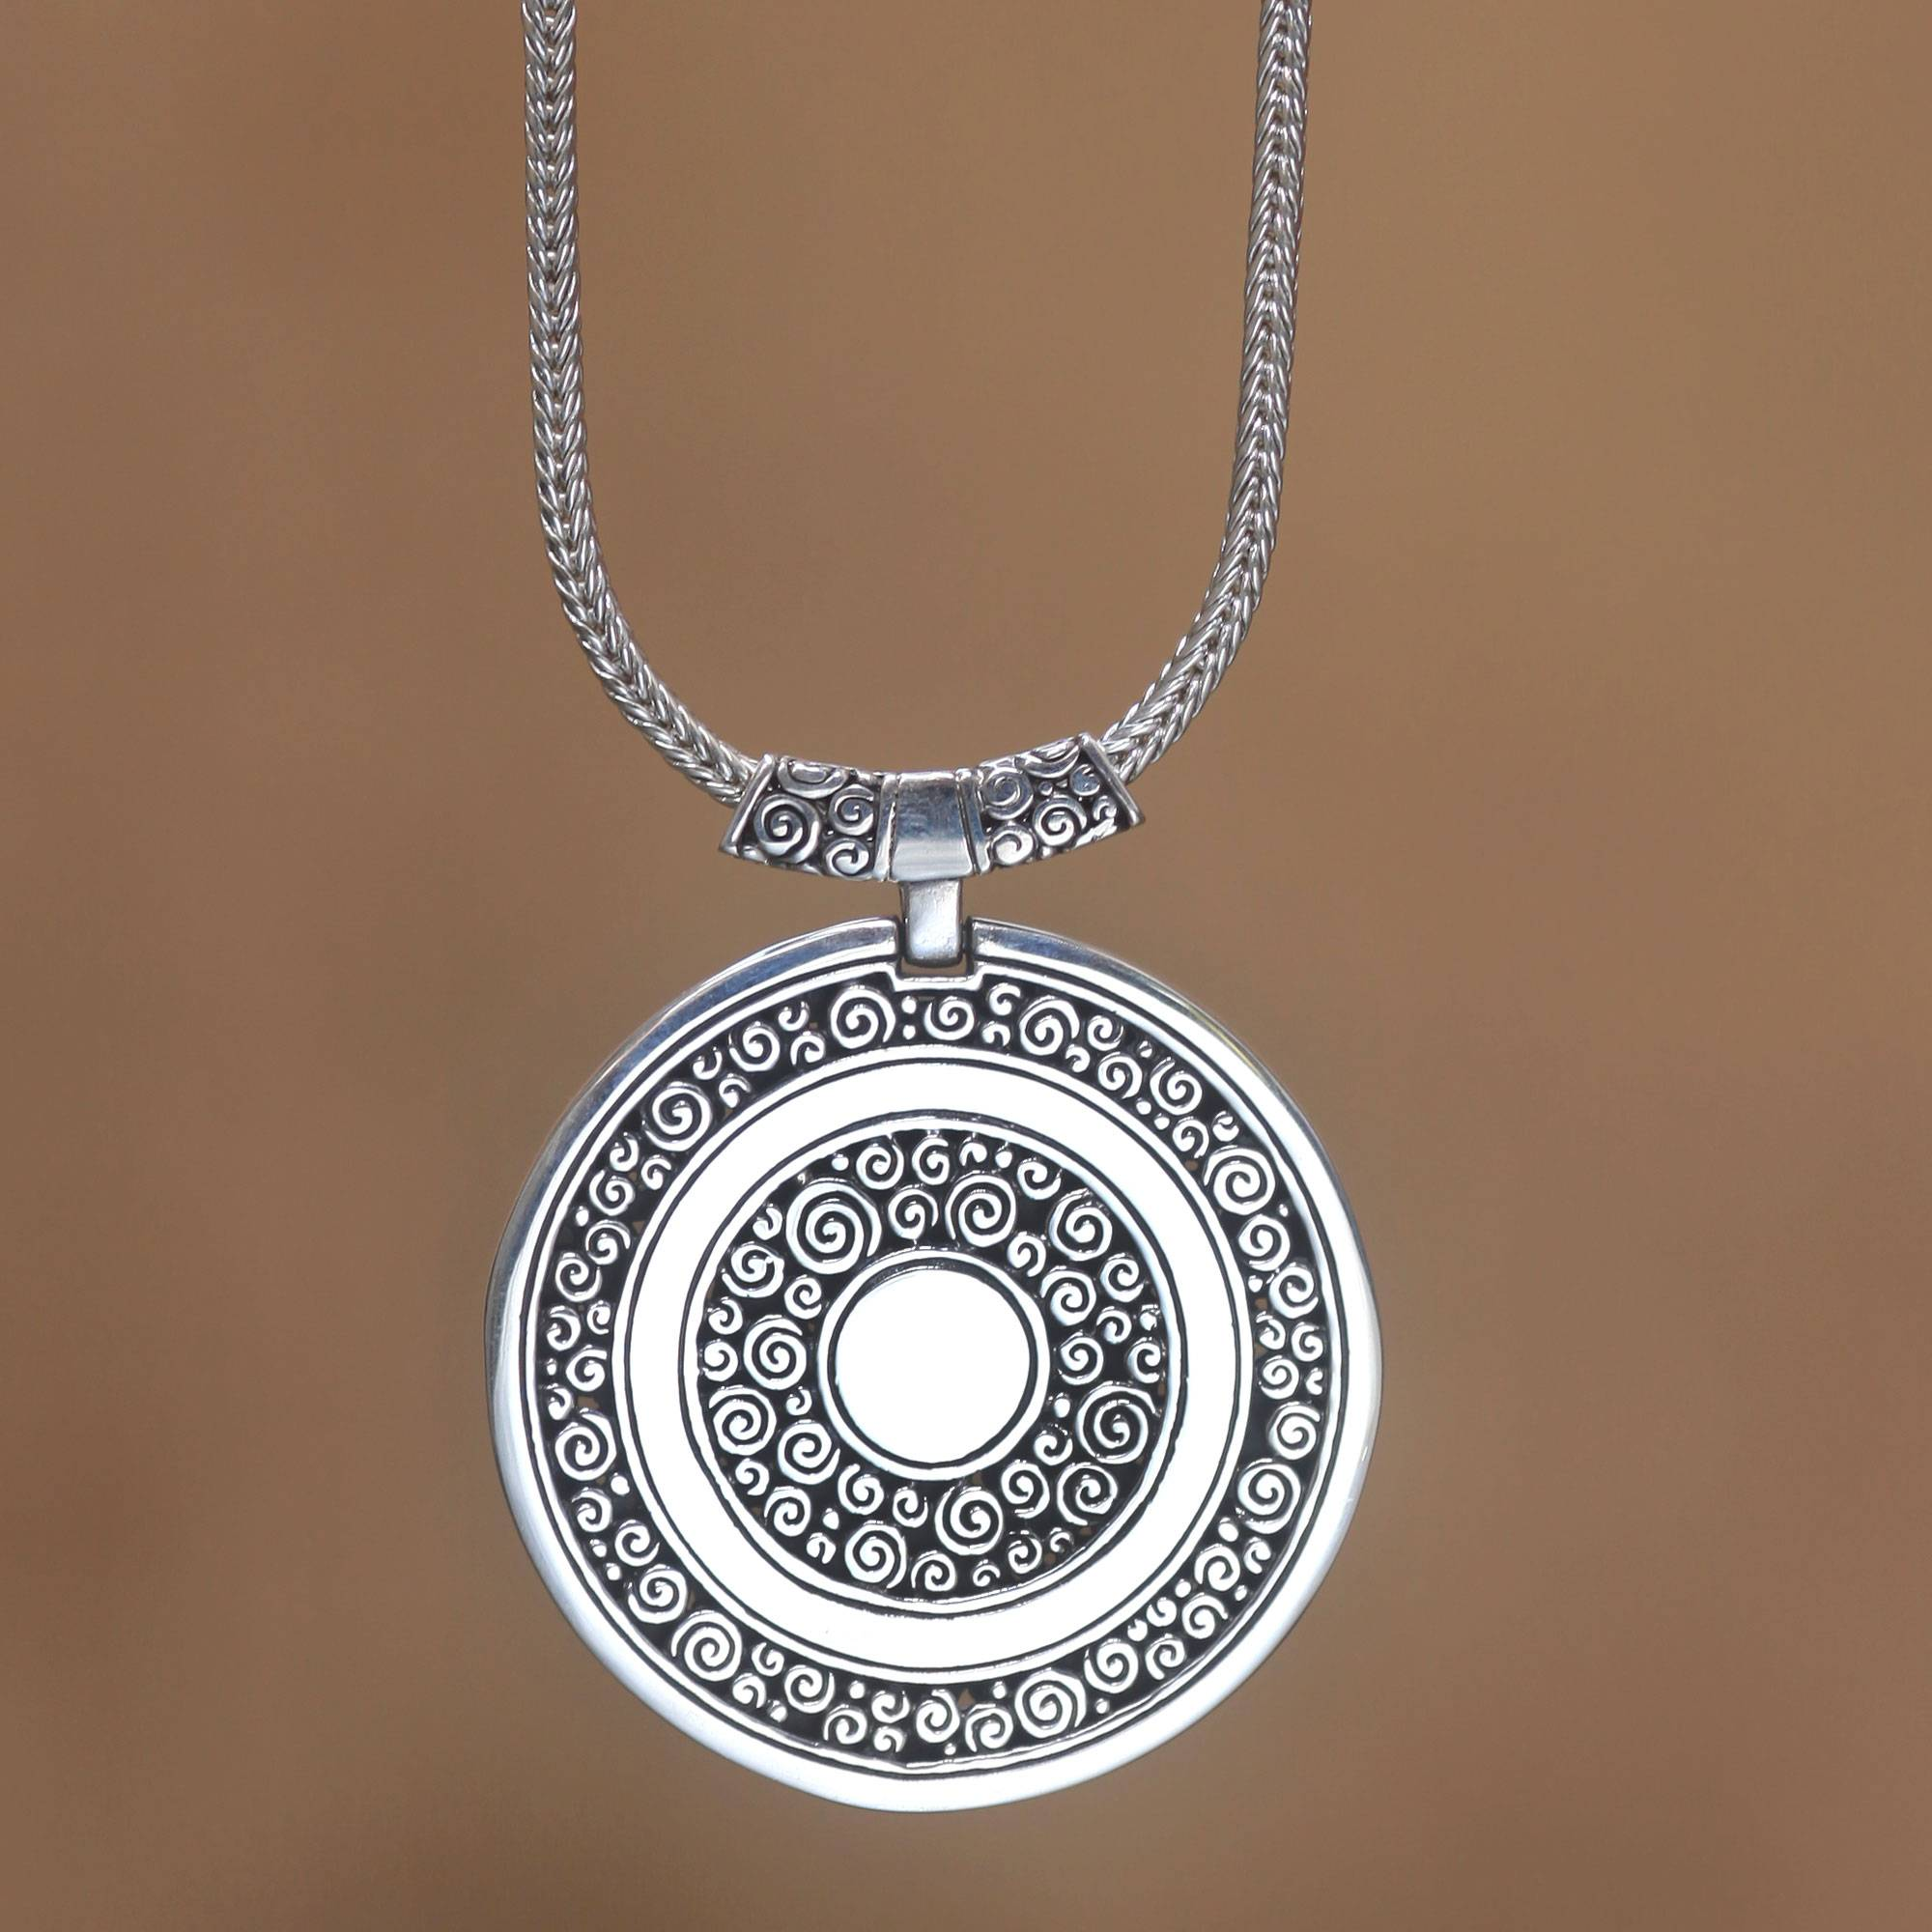 Unicef Uk Market Unique Sterling Silver Pendant Necklace Timeless Treasure